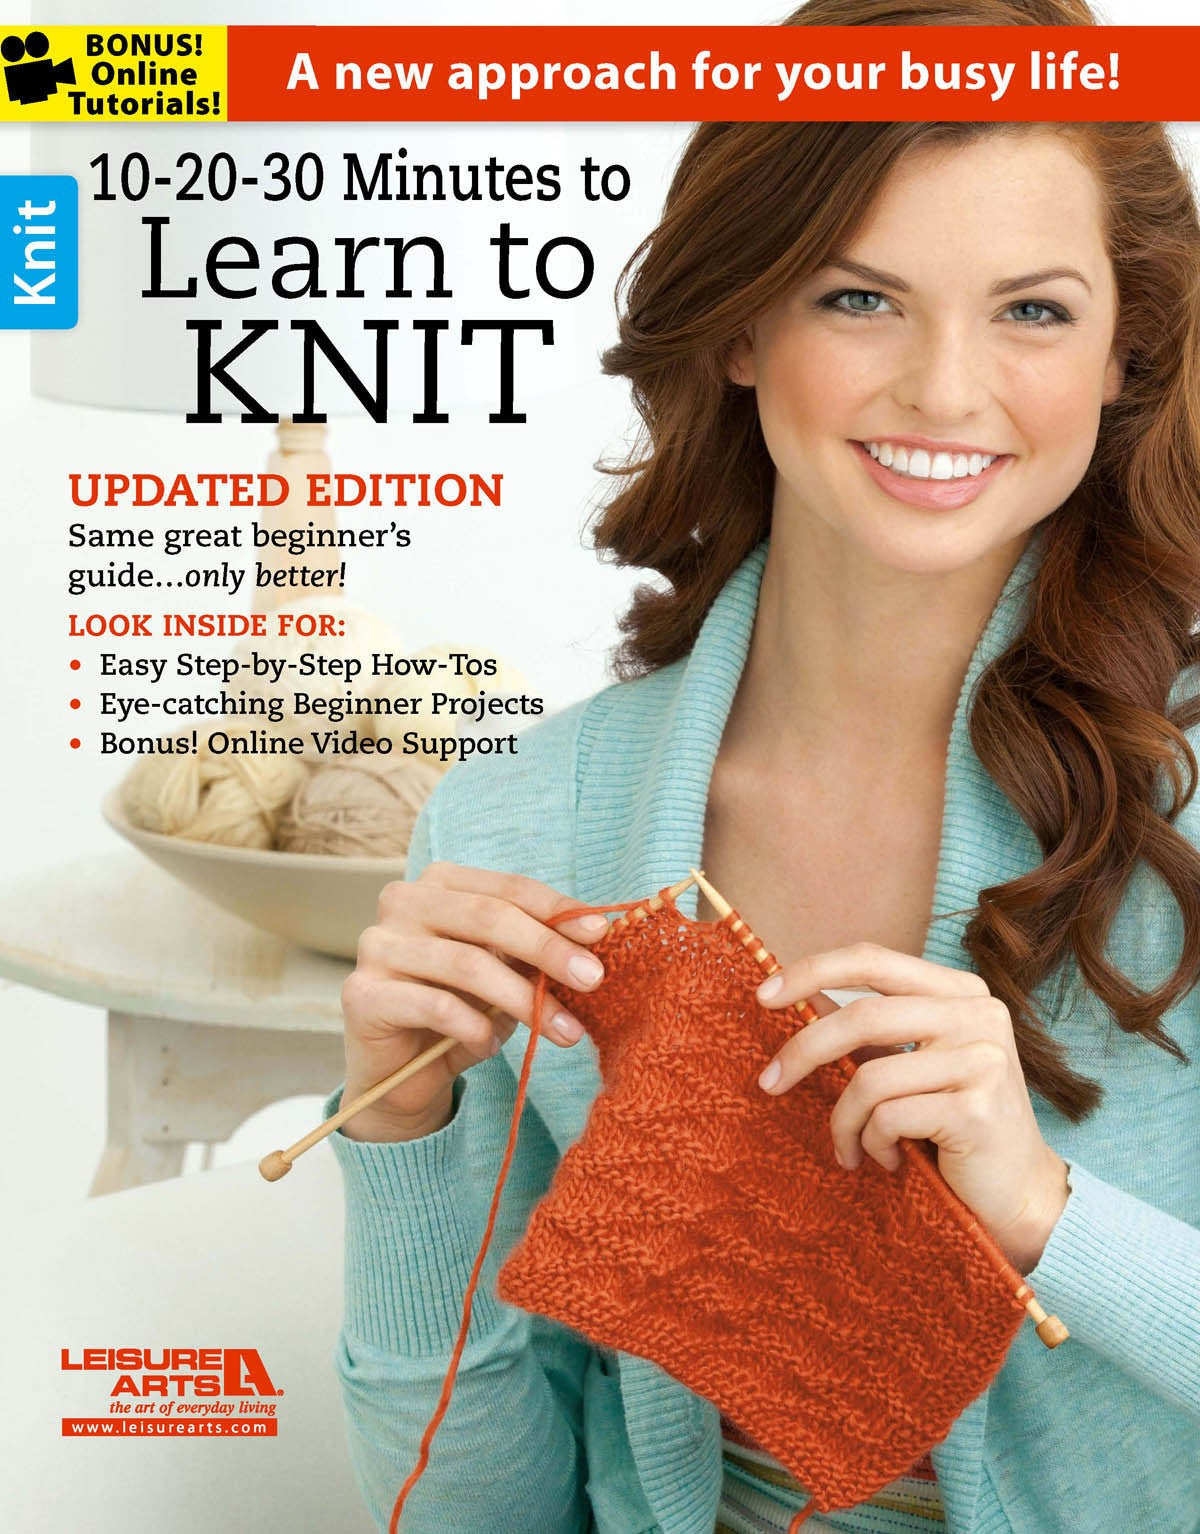 10- 20- 30 Minutes to Learn to Knit